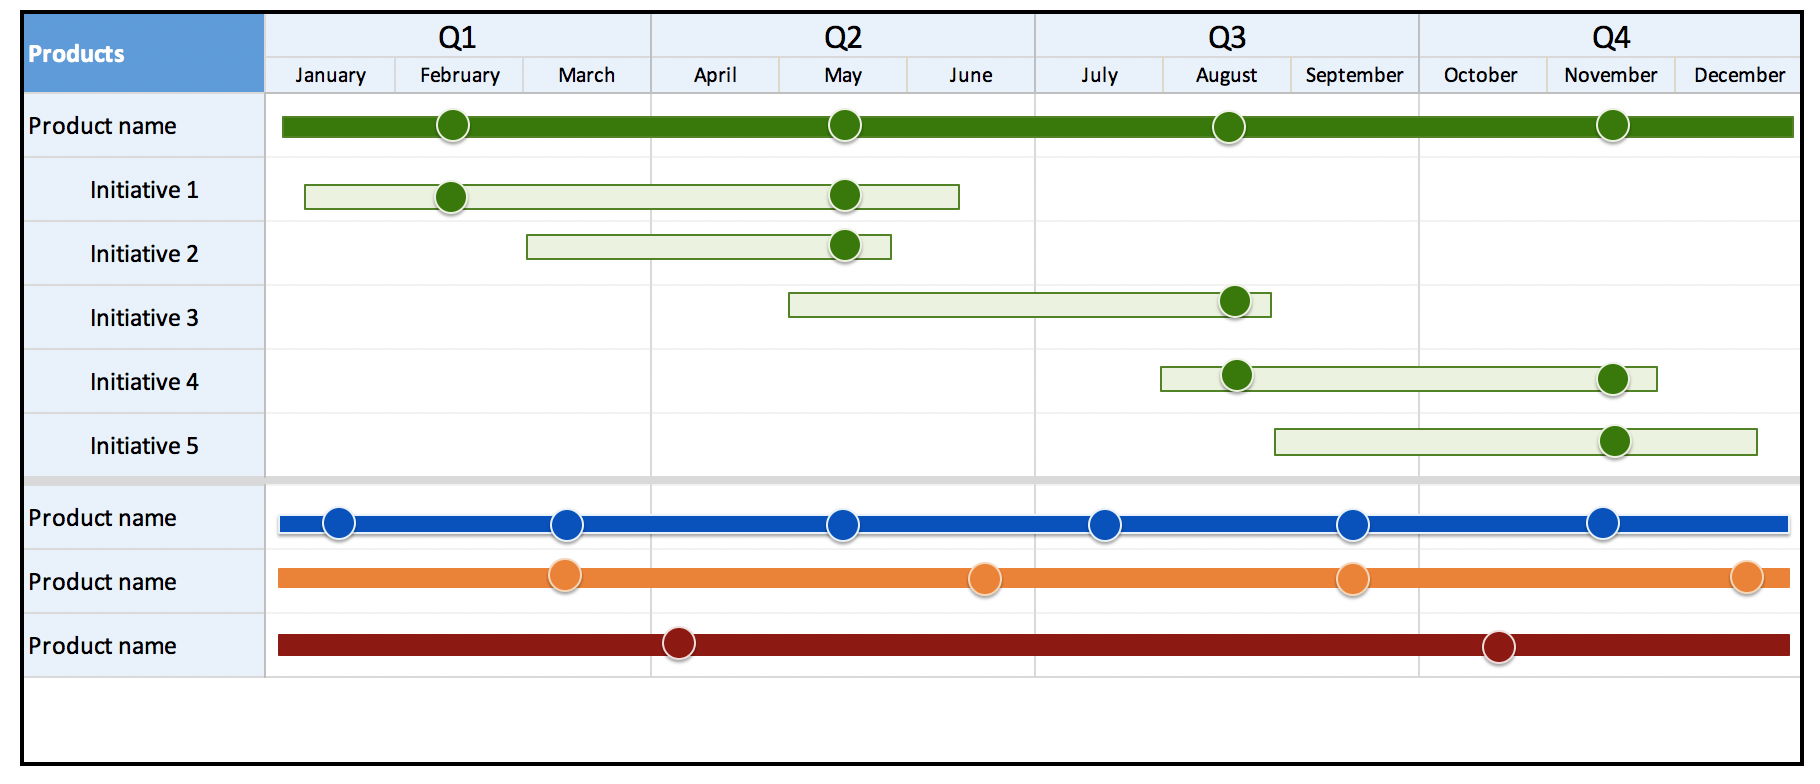 does anyone have a simple roadmap example showing list of